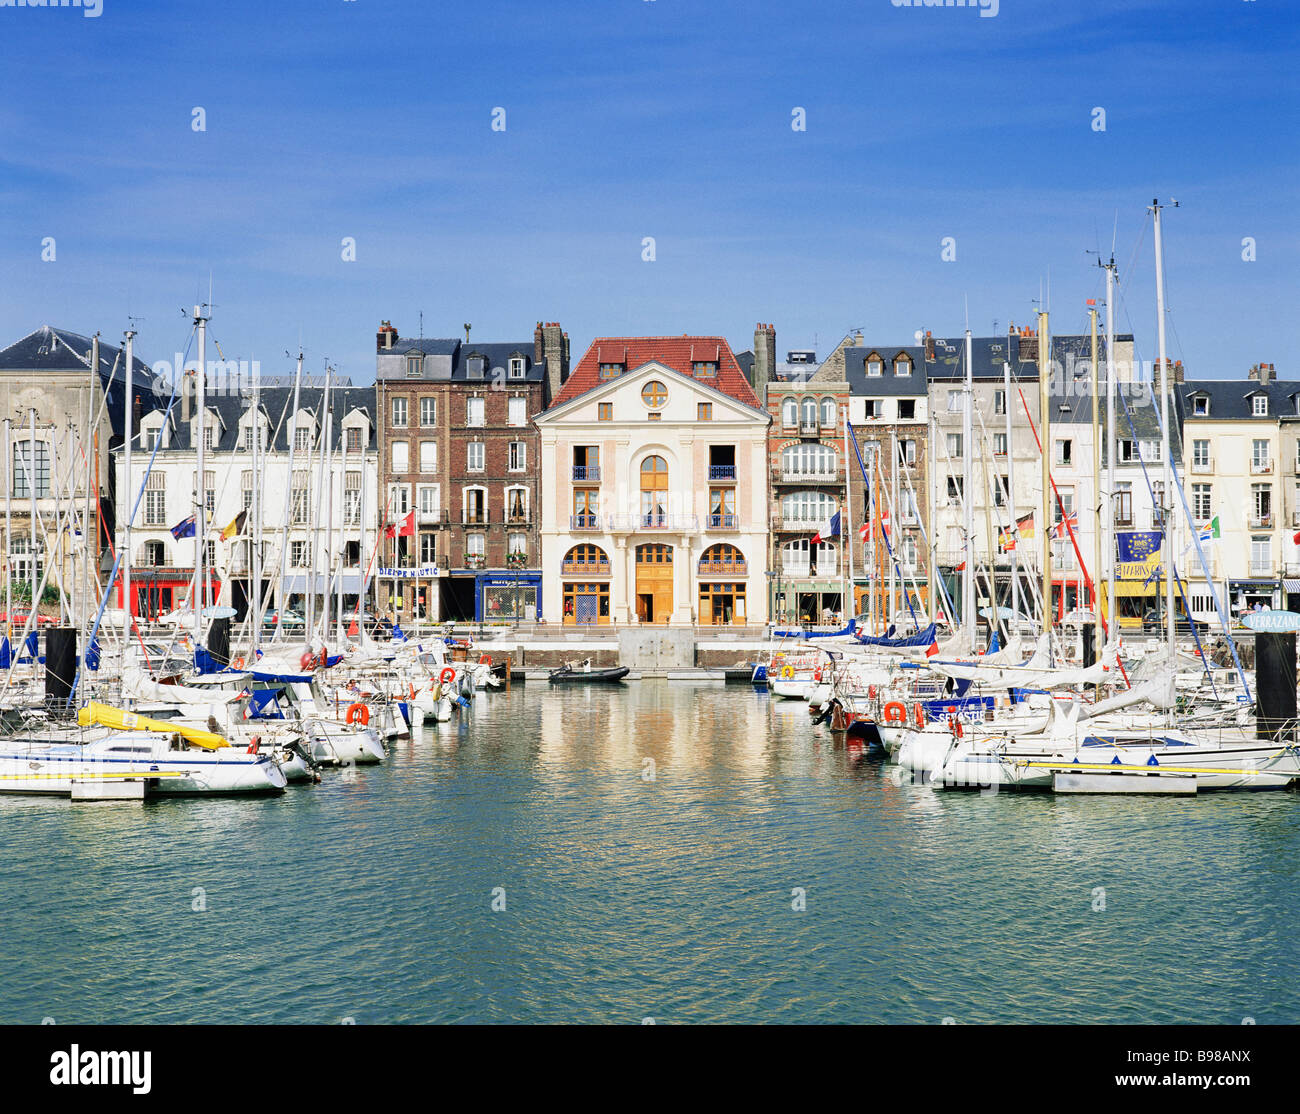 france normandy dieppe quai henry iv boats quayside stock photo 22926342 alamy. Black Bedroom Furniture Sets. Home Design Ideas